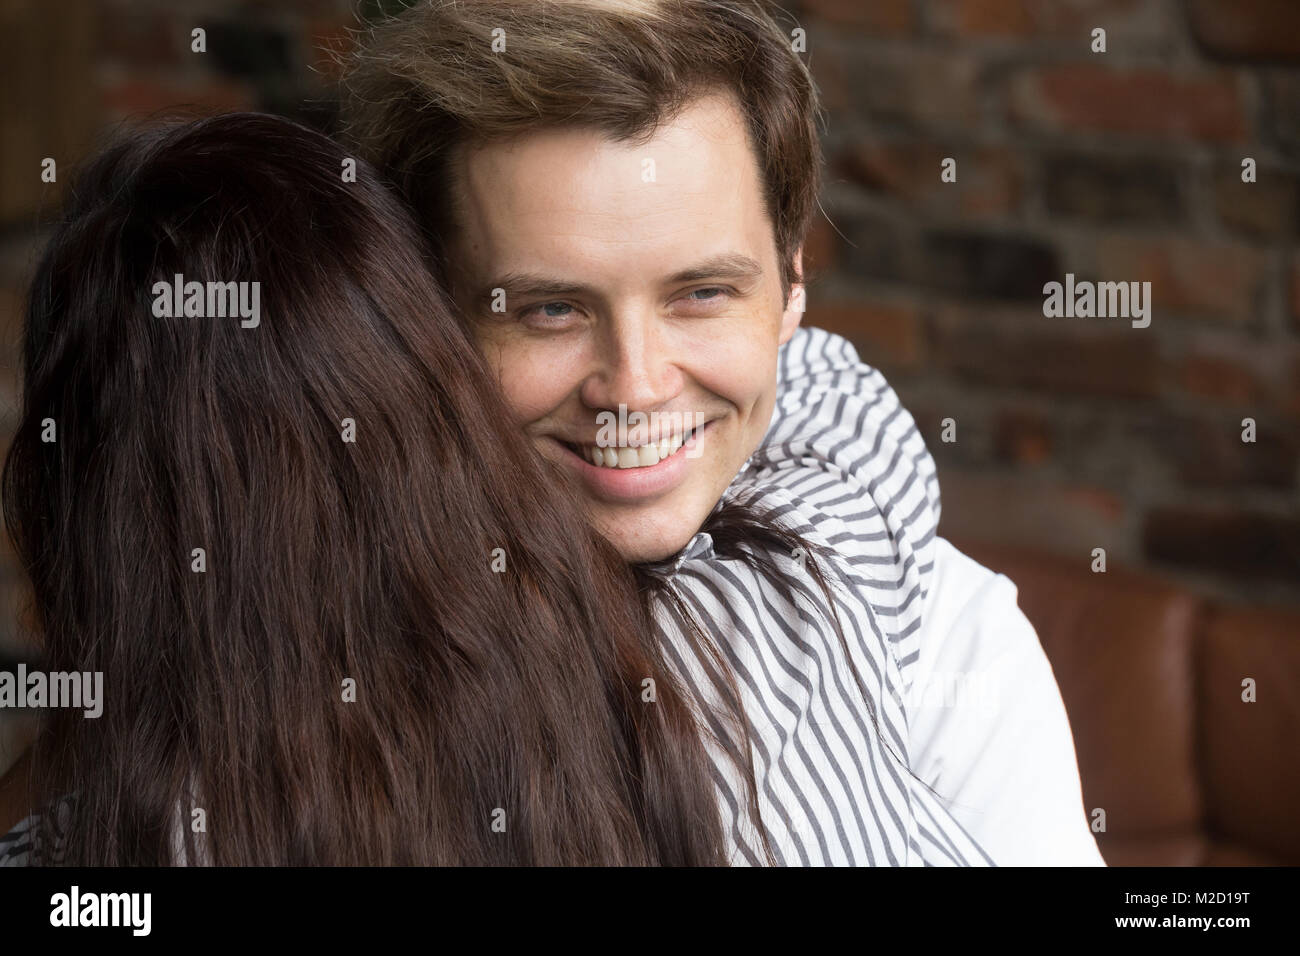 Young sly liar man happily smiling while woman embracing him - Stock Image